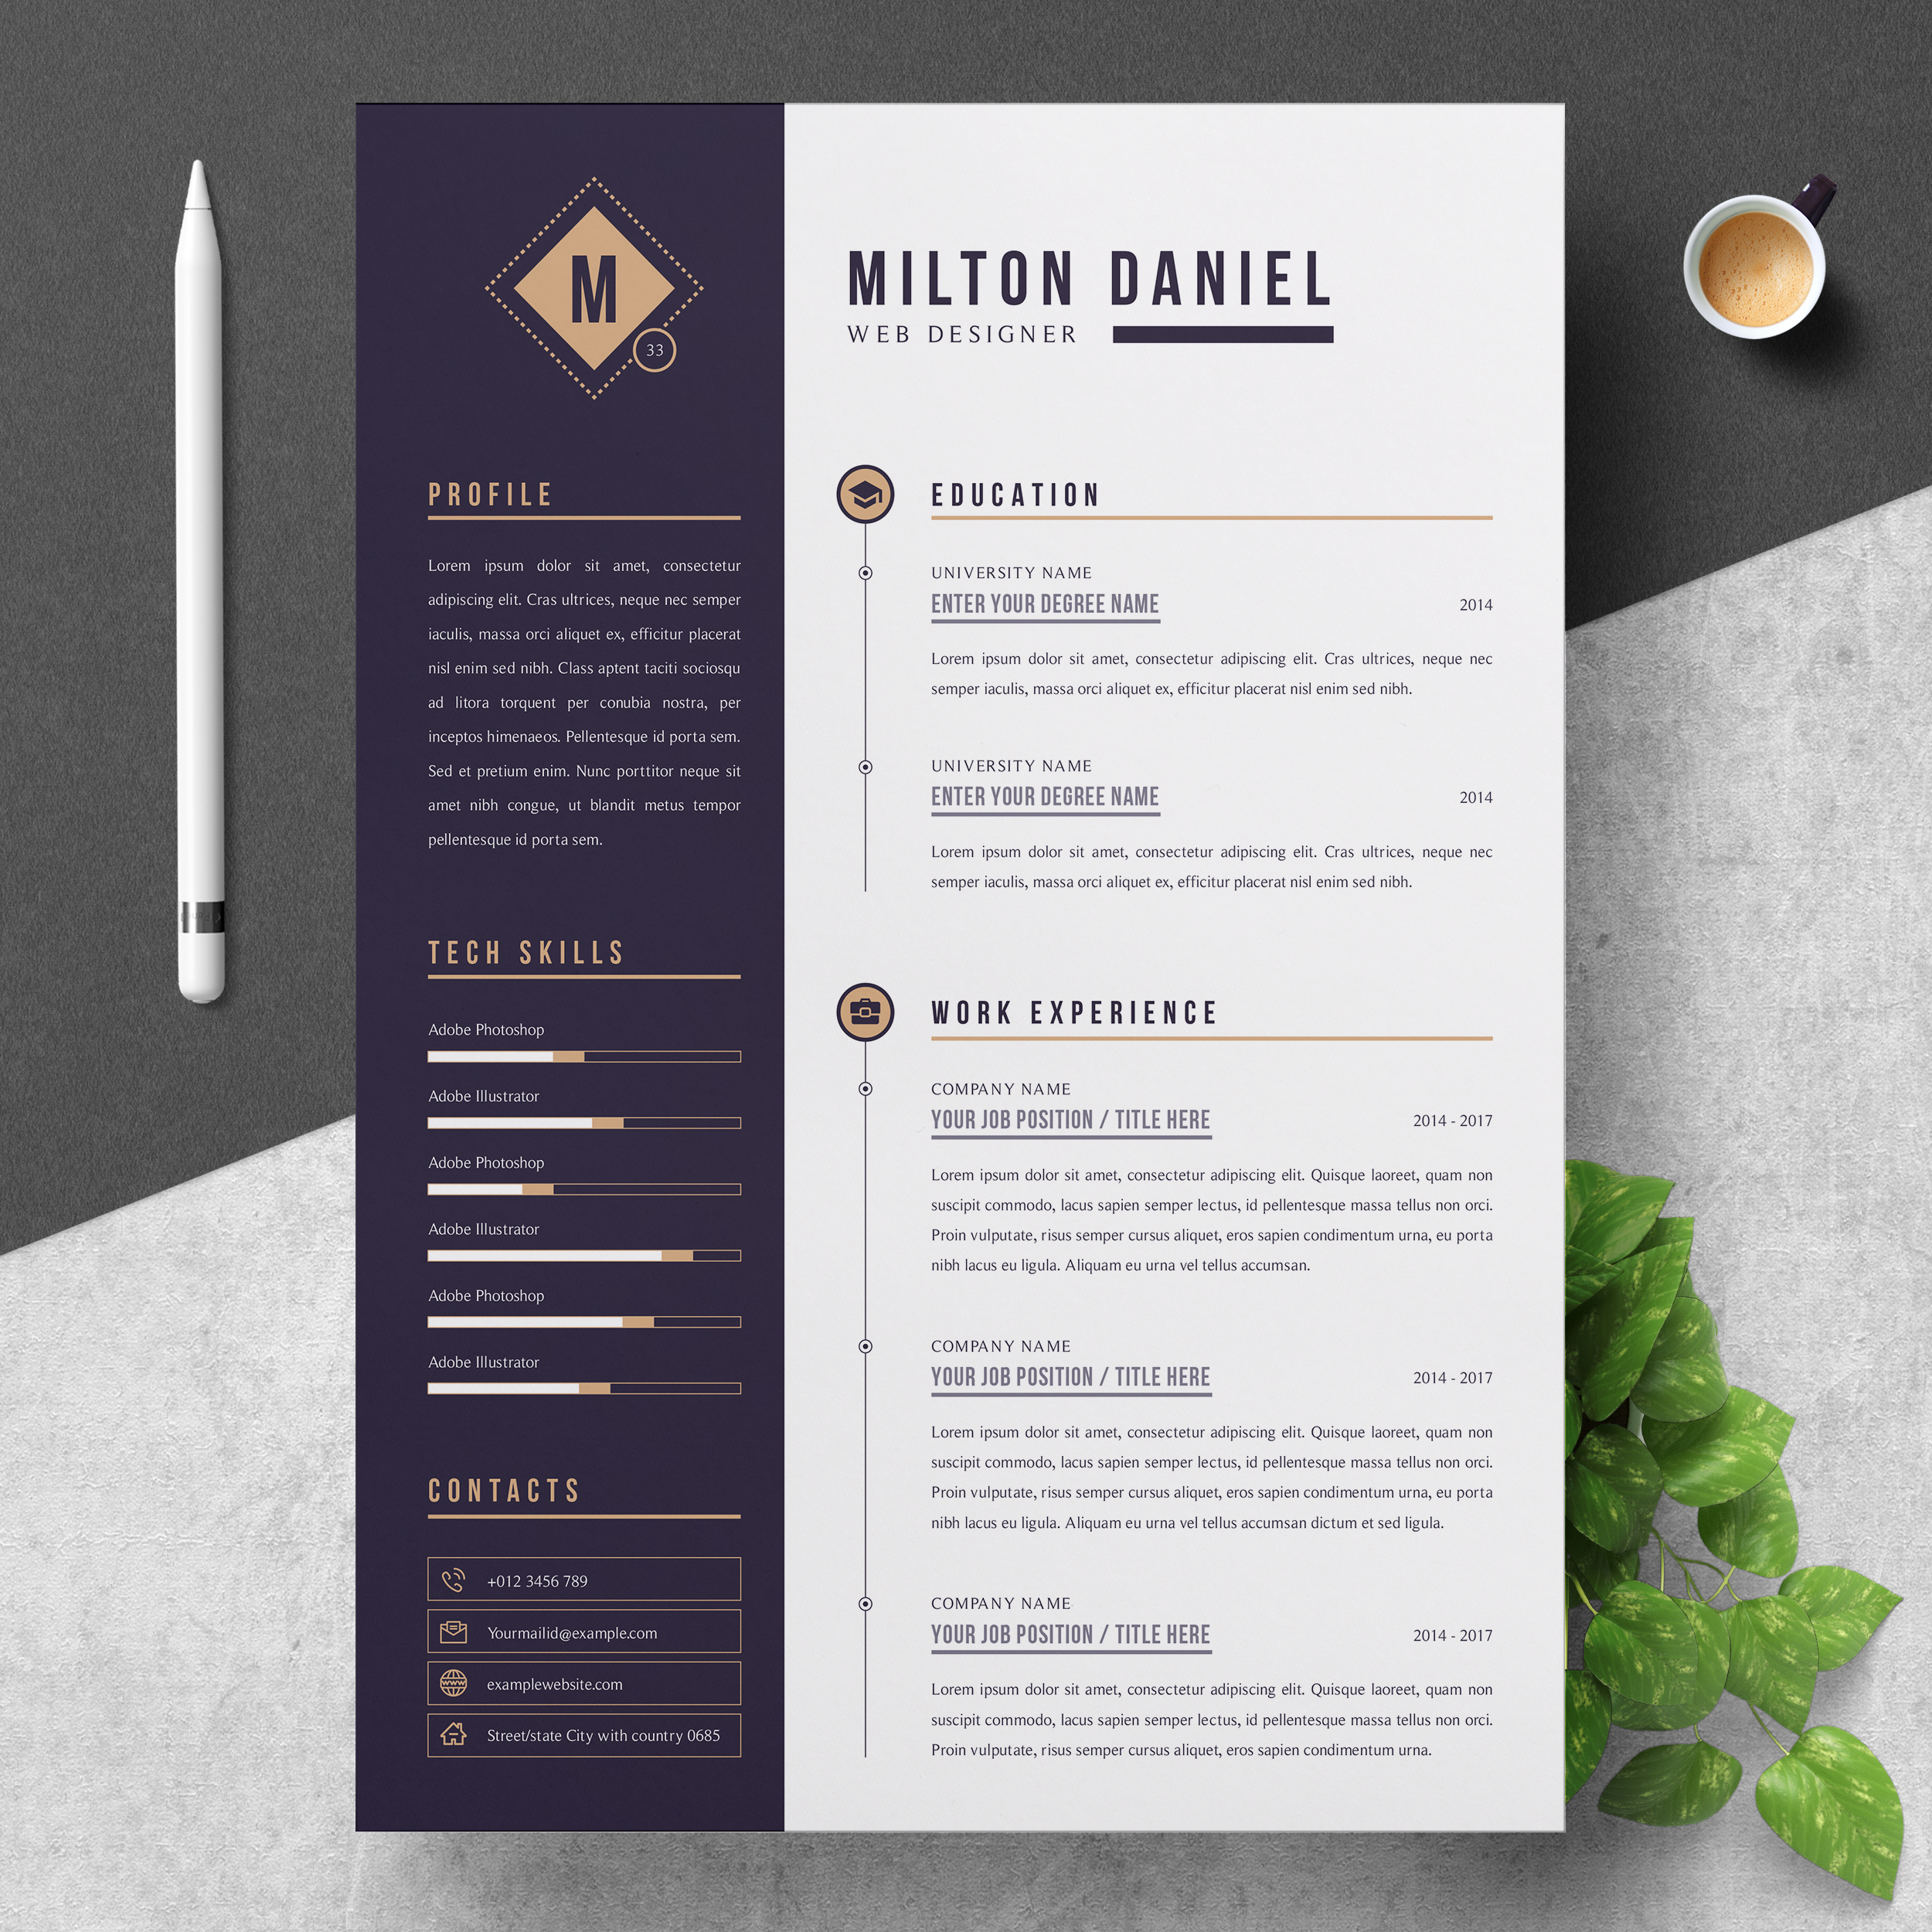 professional resume cv template resumeinventor for photoshop job clean creative and Resume Resume For Photoshop Job